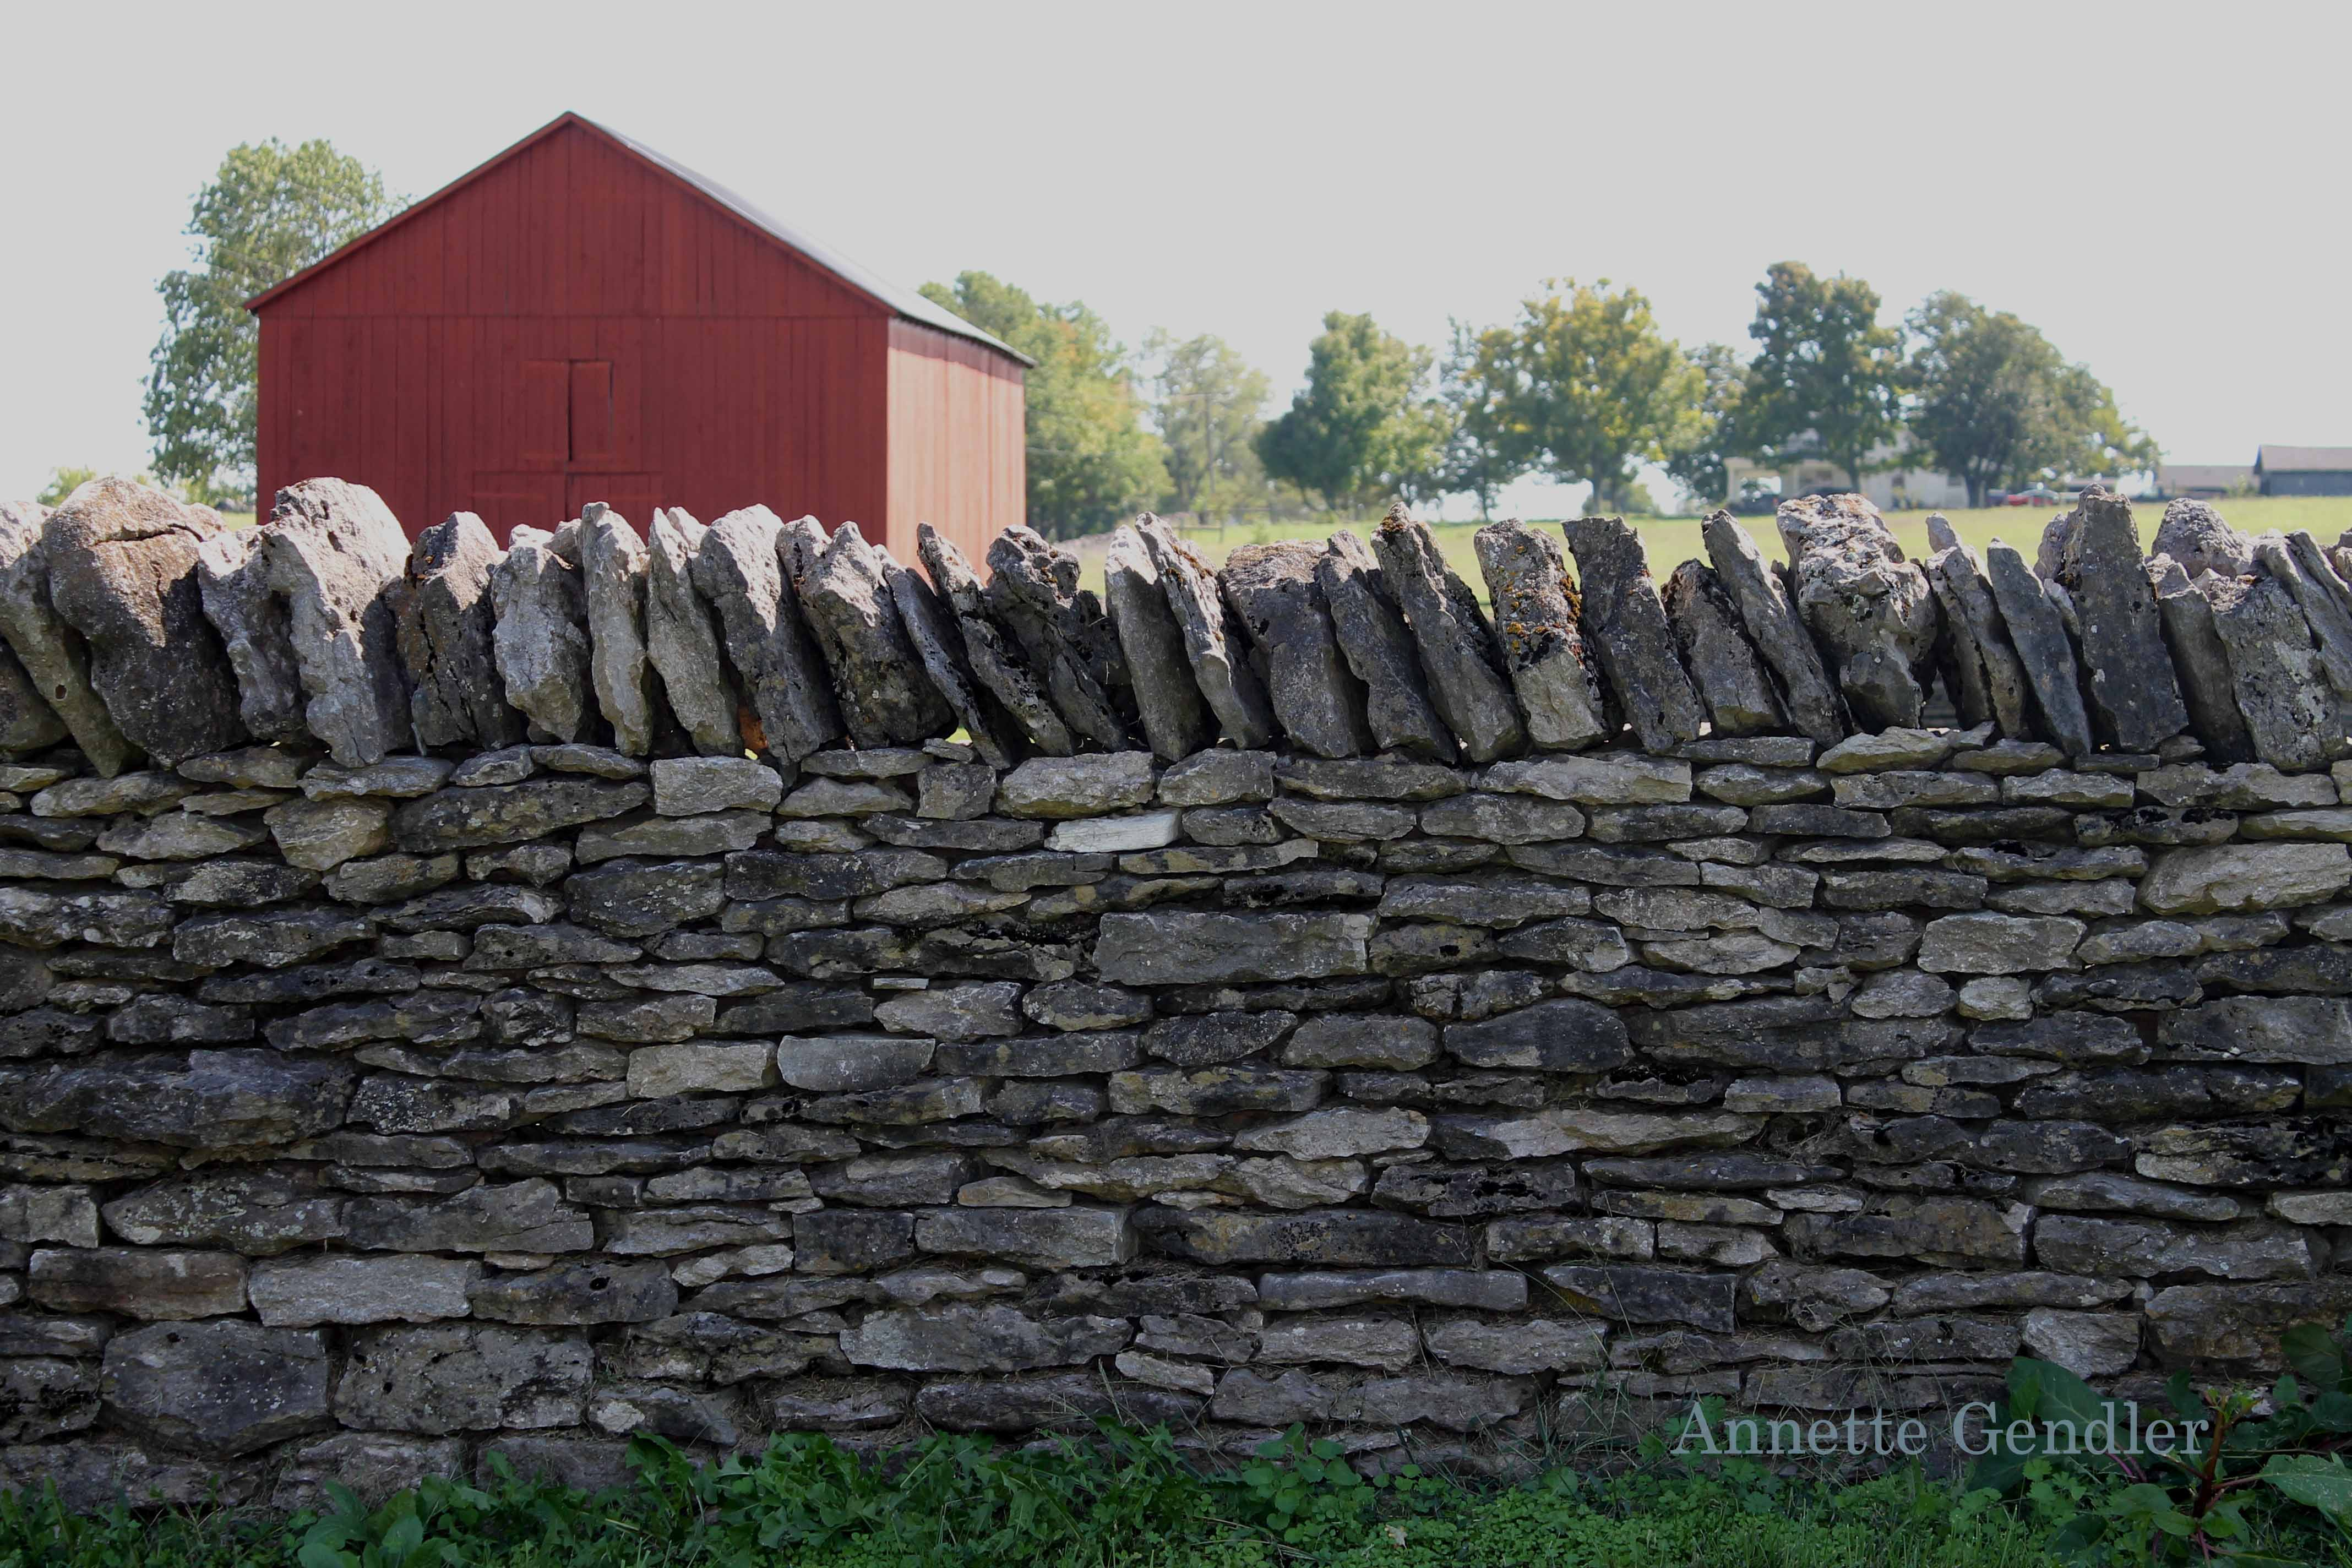 stone fence with red barn